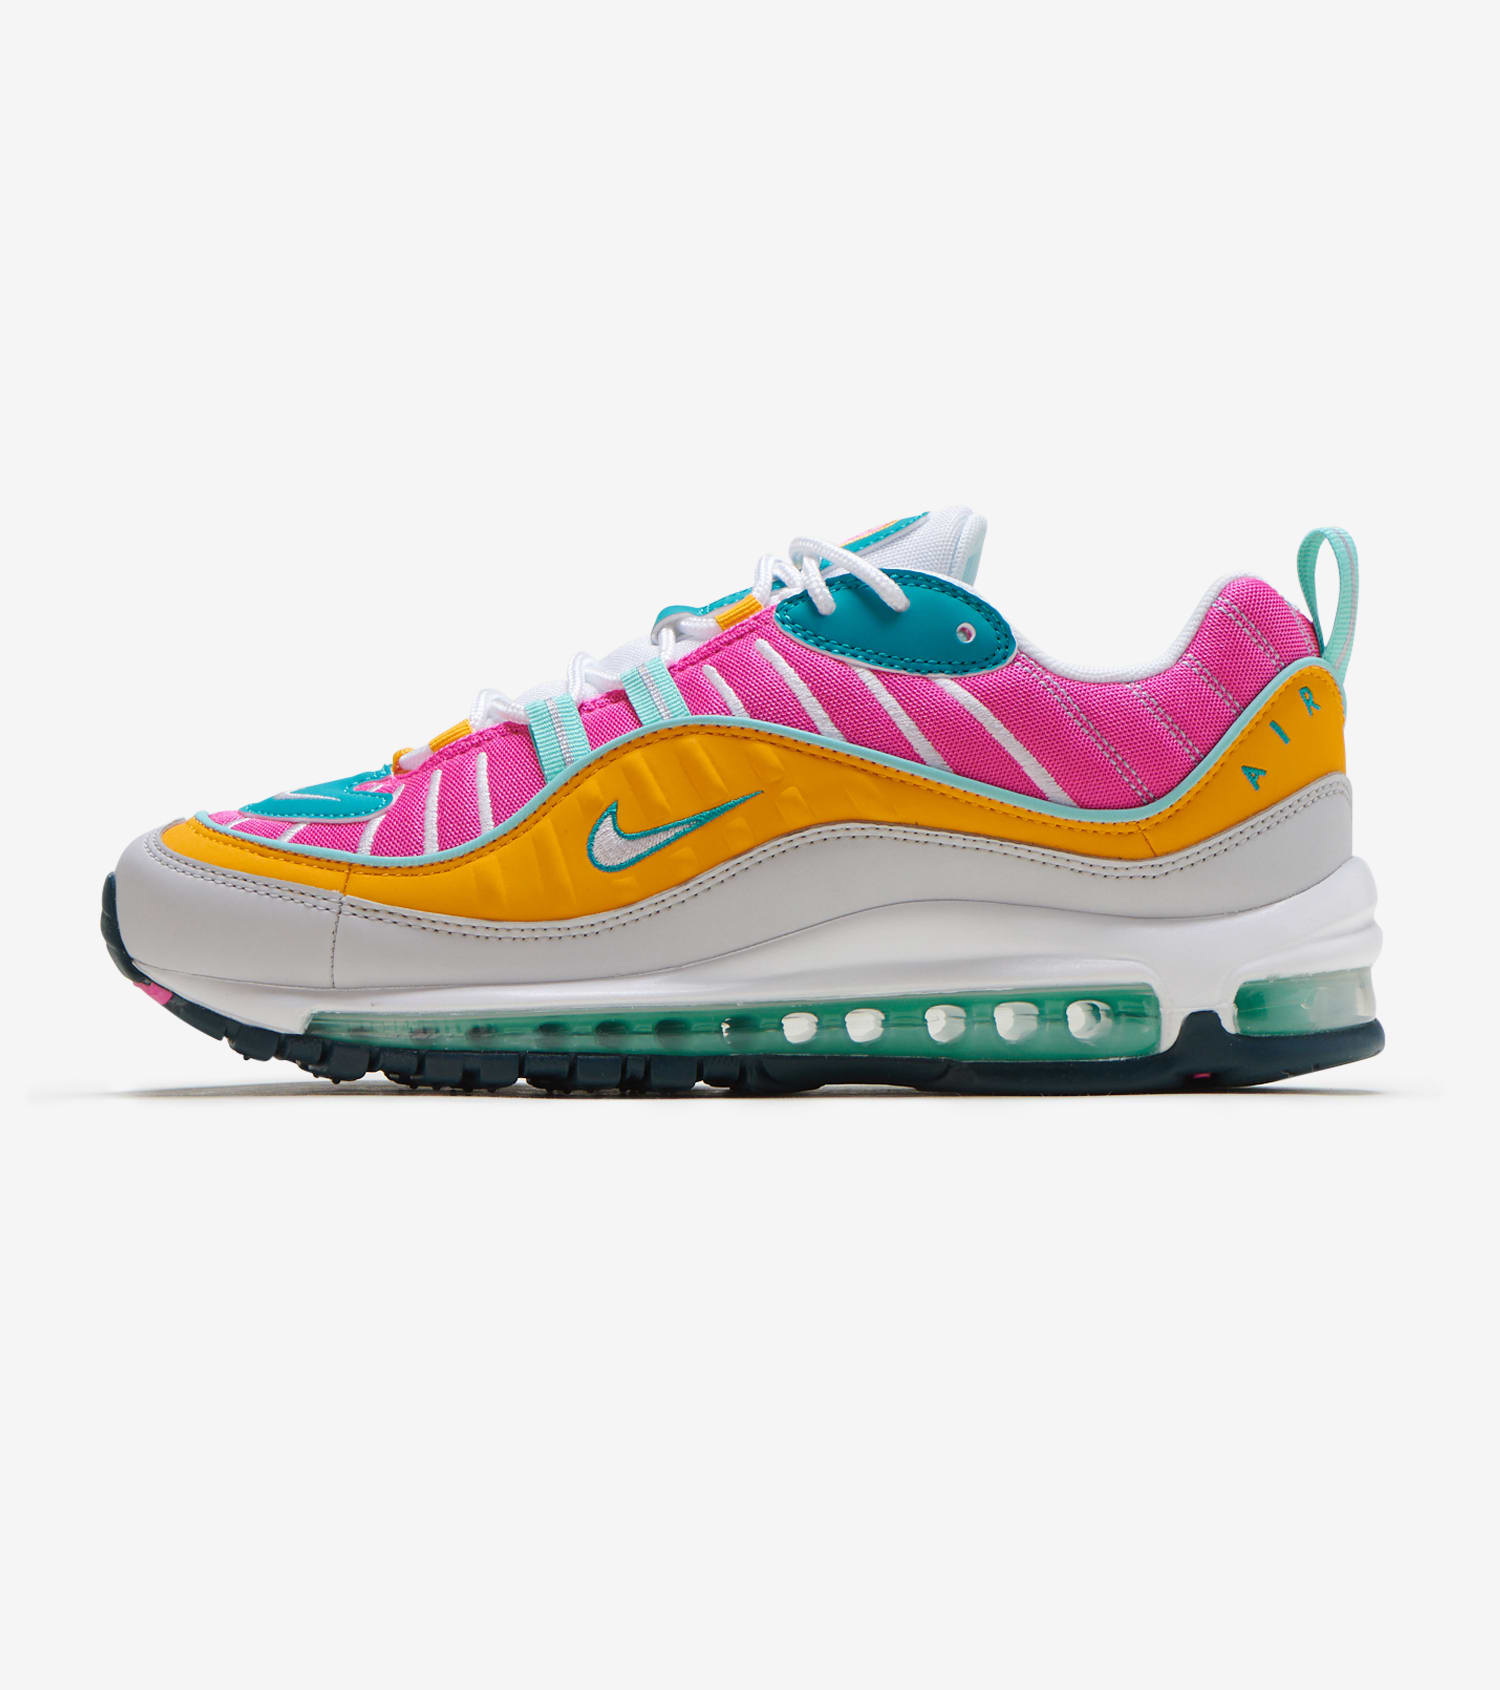 Nike Air Max 98 Trainers In white grey and pink